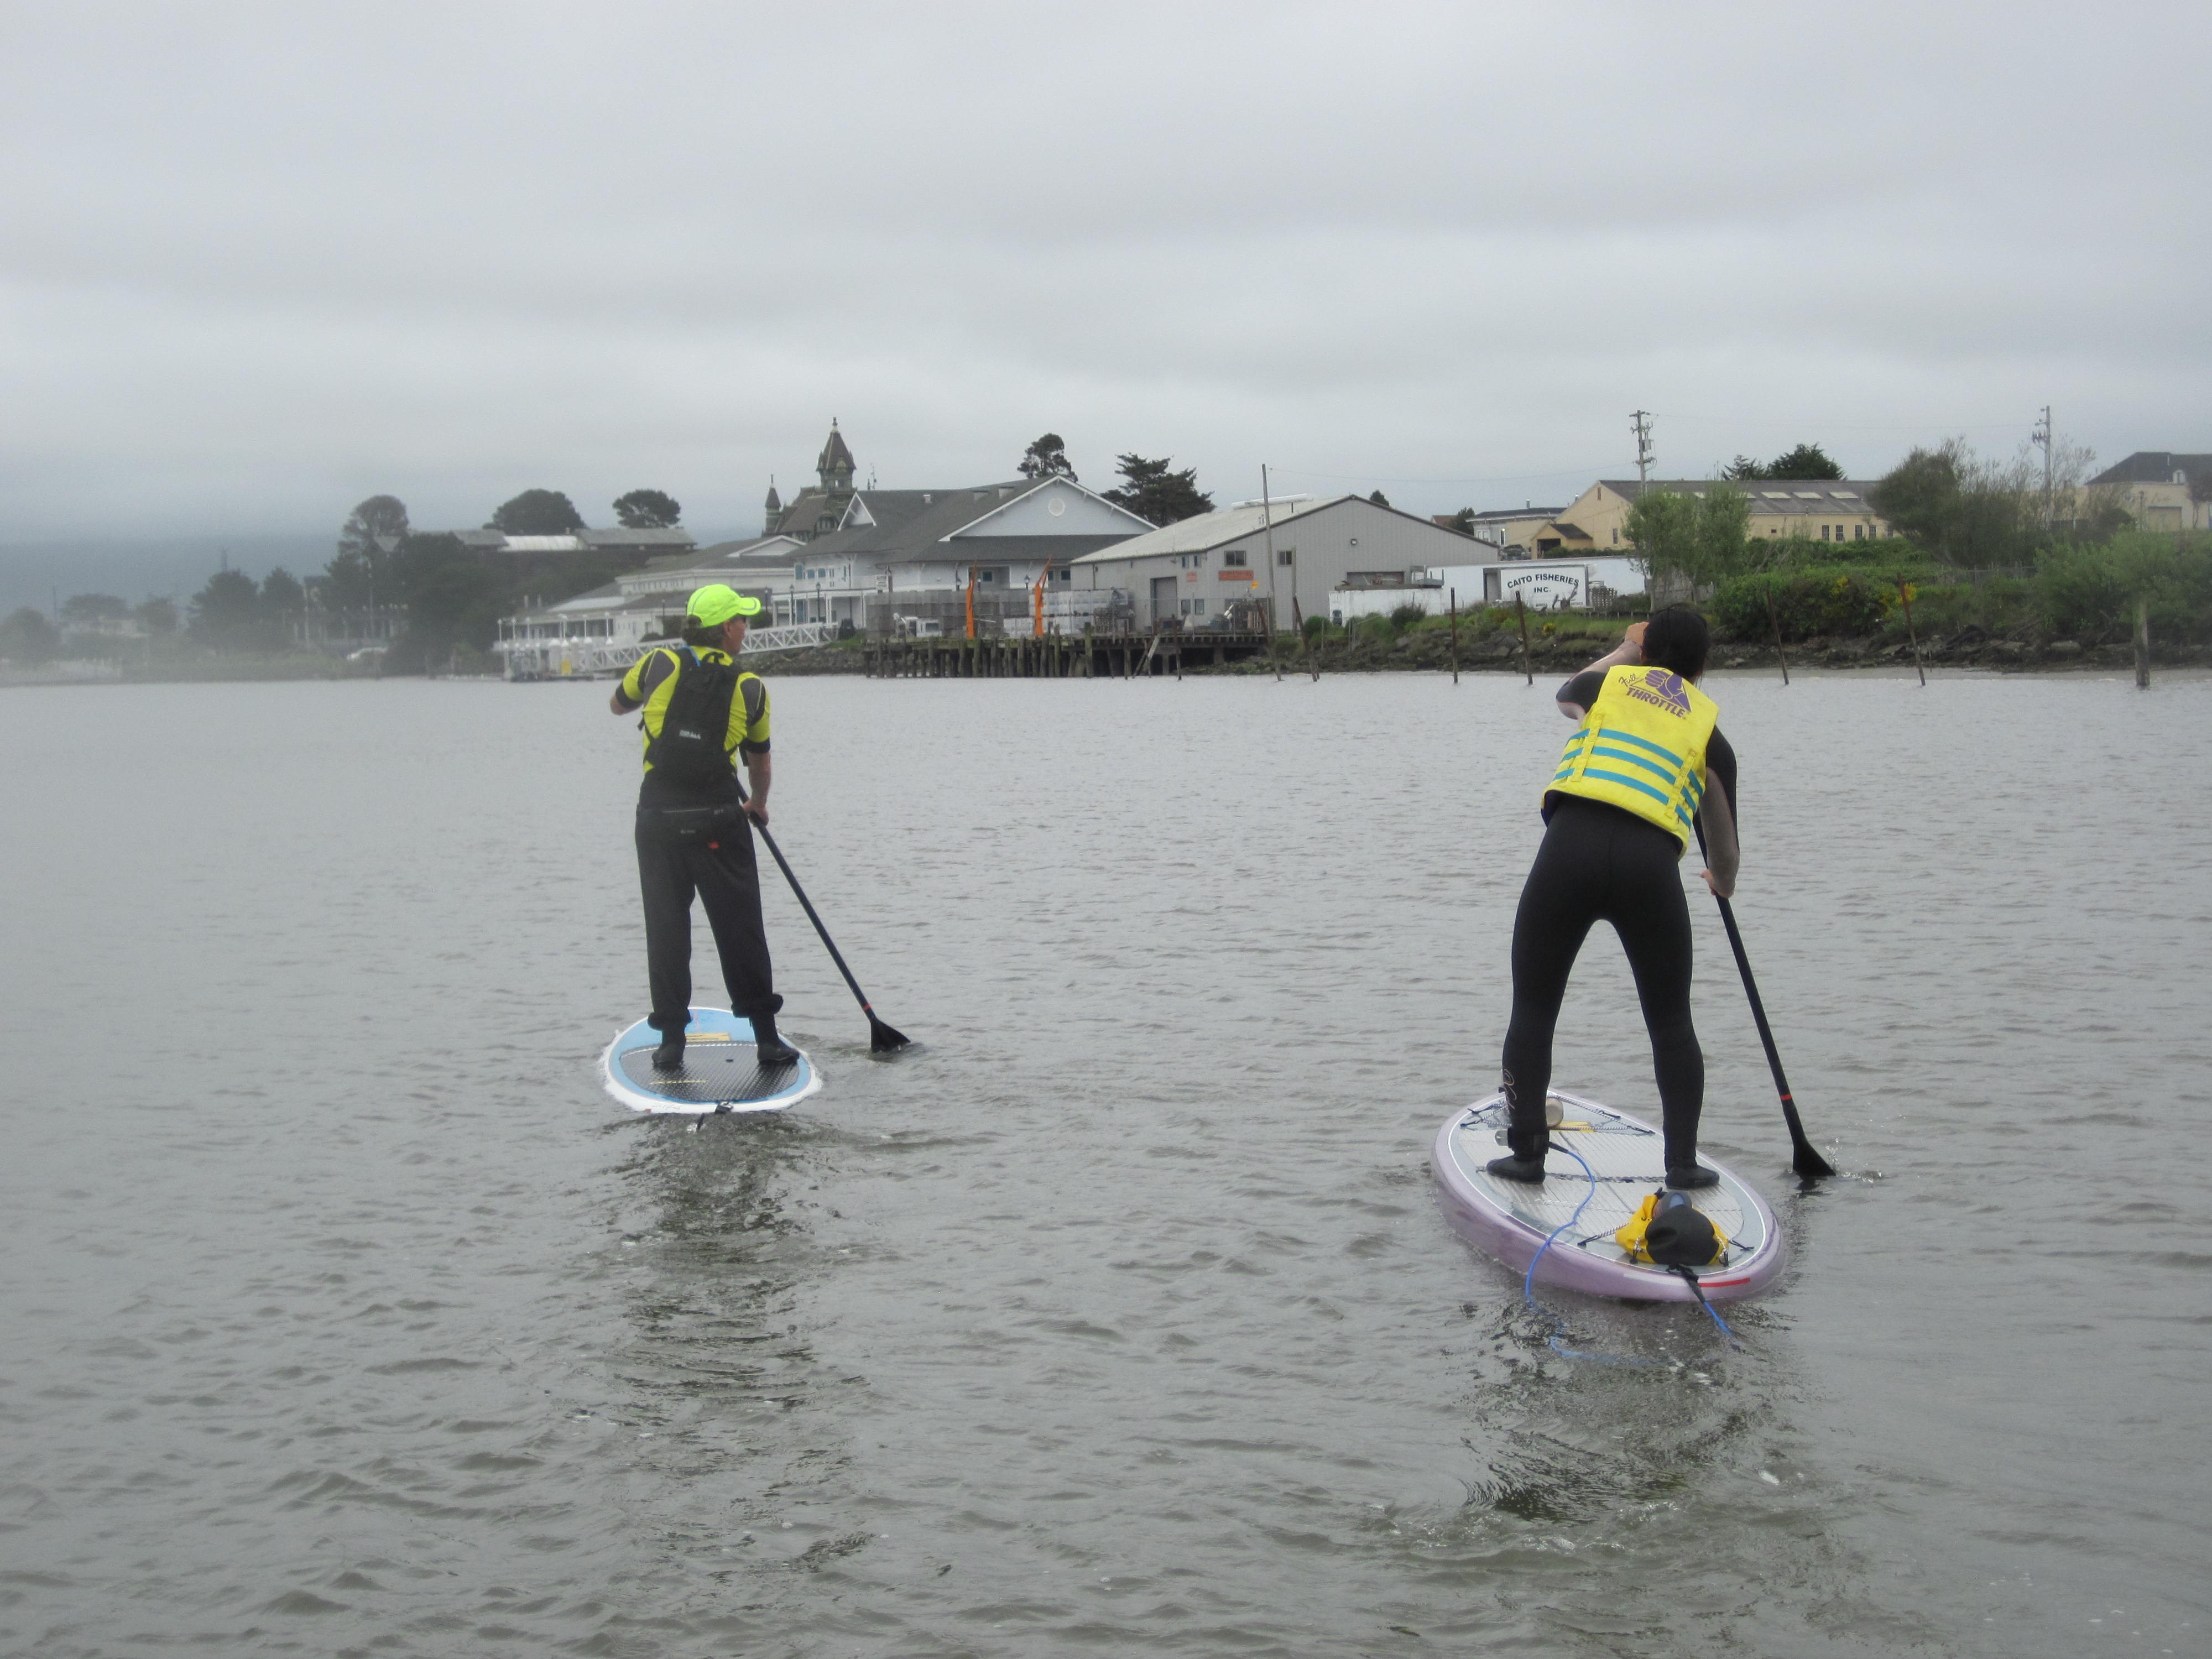 Patricia Cheng Terry paddles with Tim Haywood. - PHOTO BY AMY CIRINCIONI